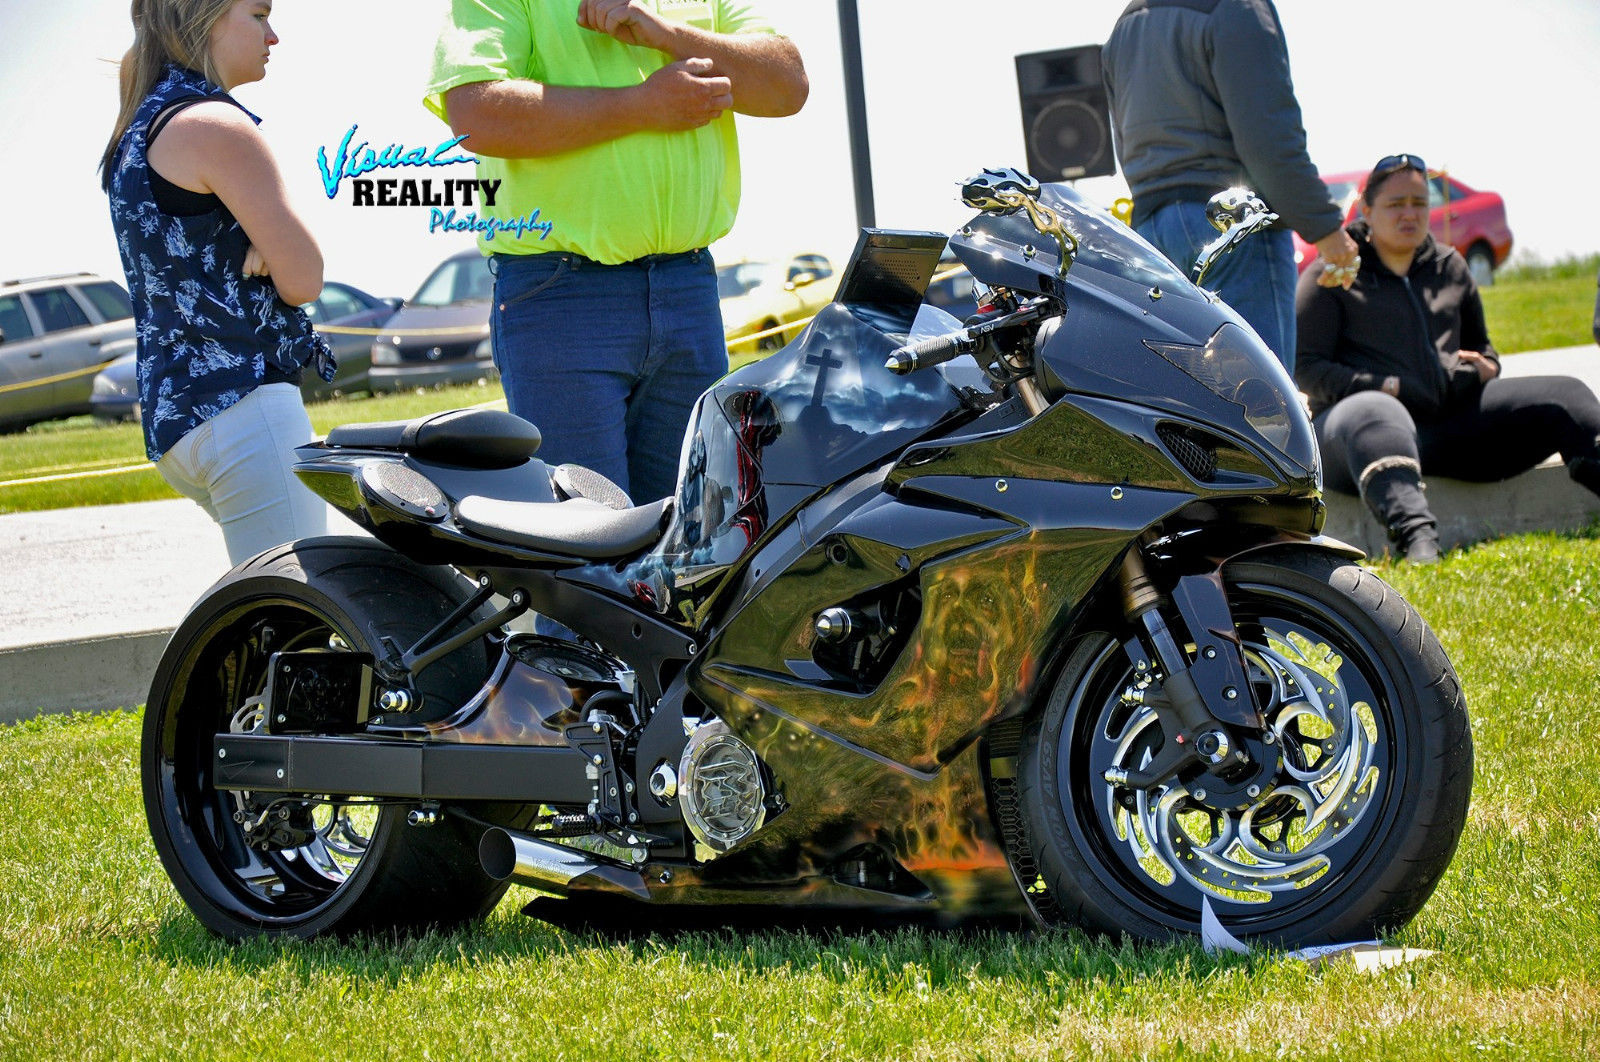 2006 custom gsxr 1000 300 fat tire stereo system custom paint many extras. Black Bedroom Furniture Sets. Home Design Ideas